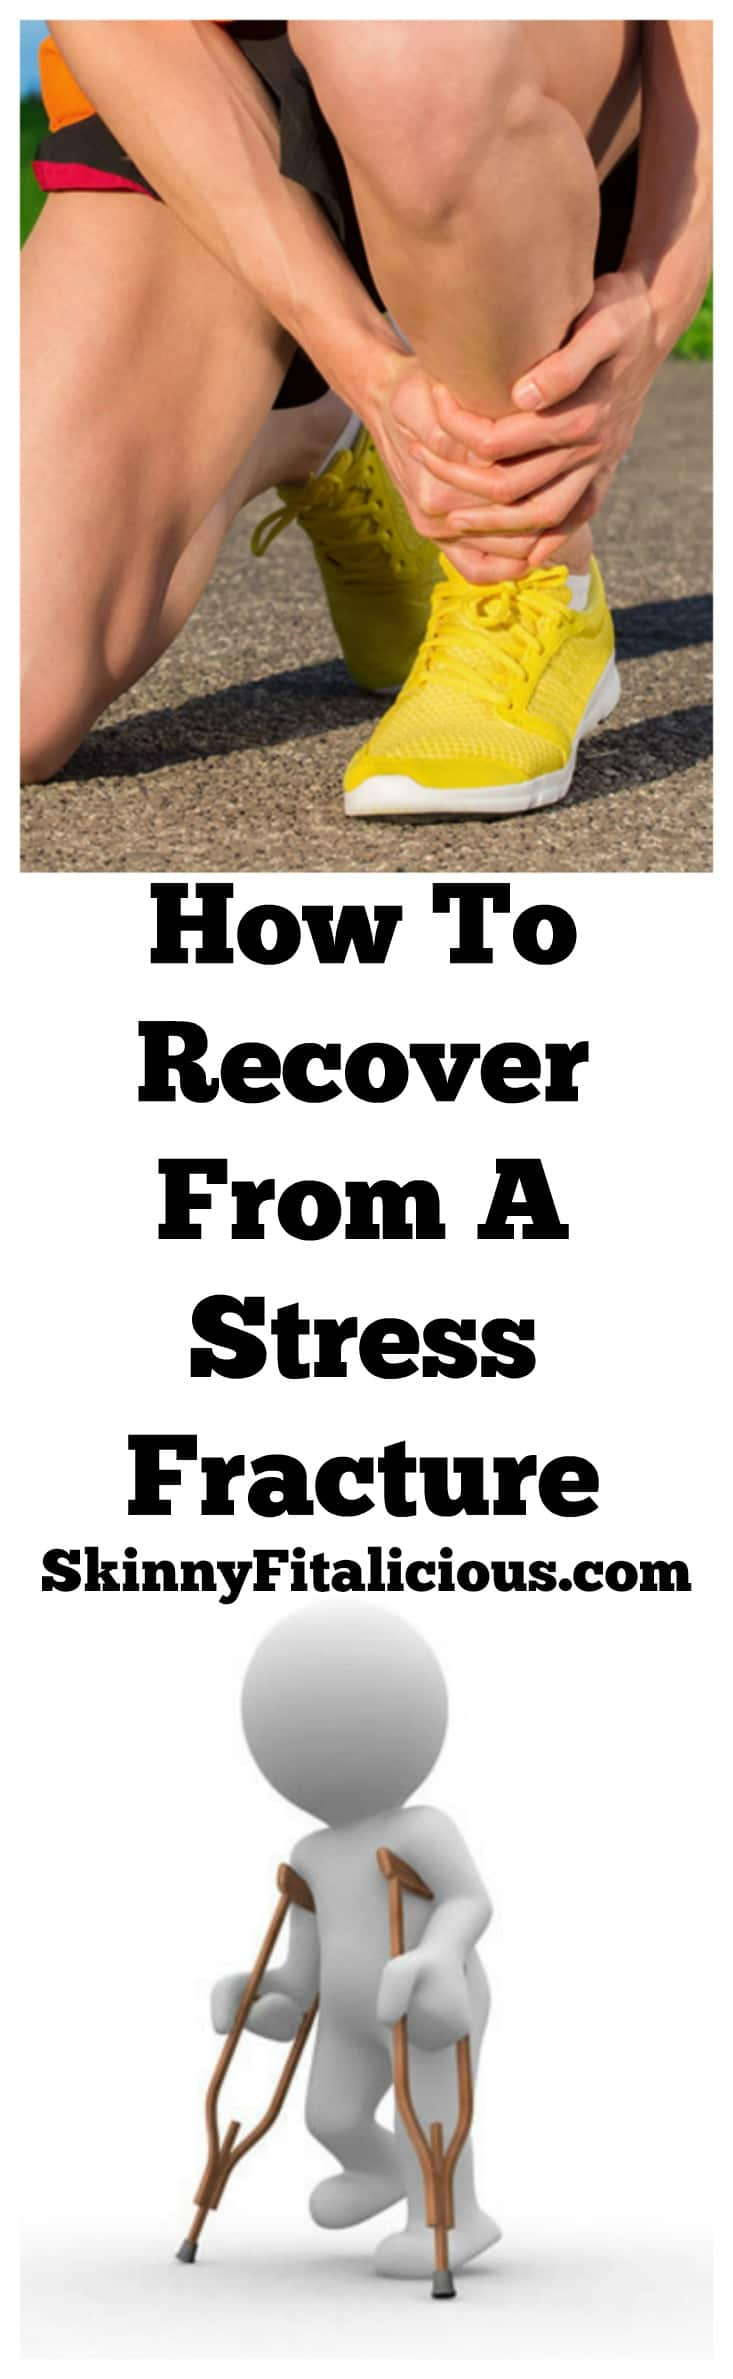 For those who've never dealt with a stress fracture it is frustrating. Here's how to recover from a stress fracture from someone who's recovered from many!